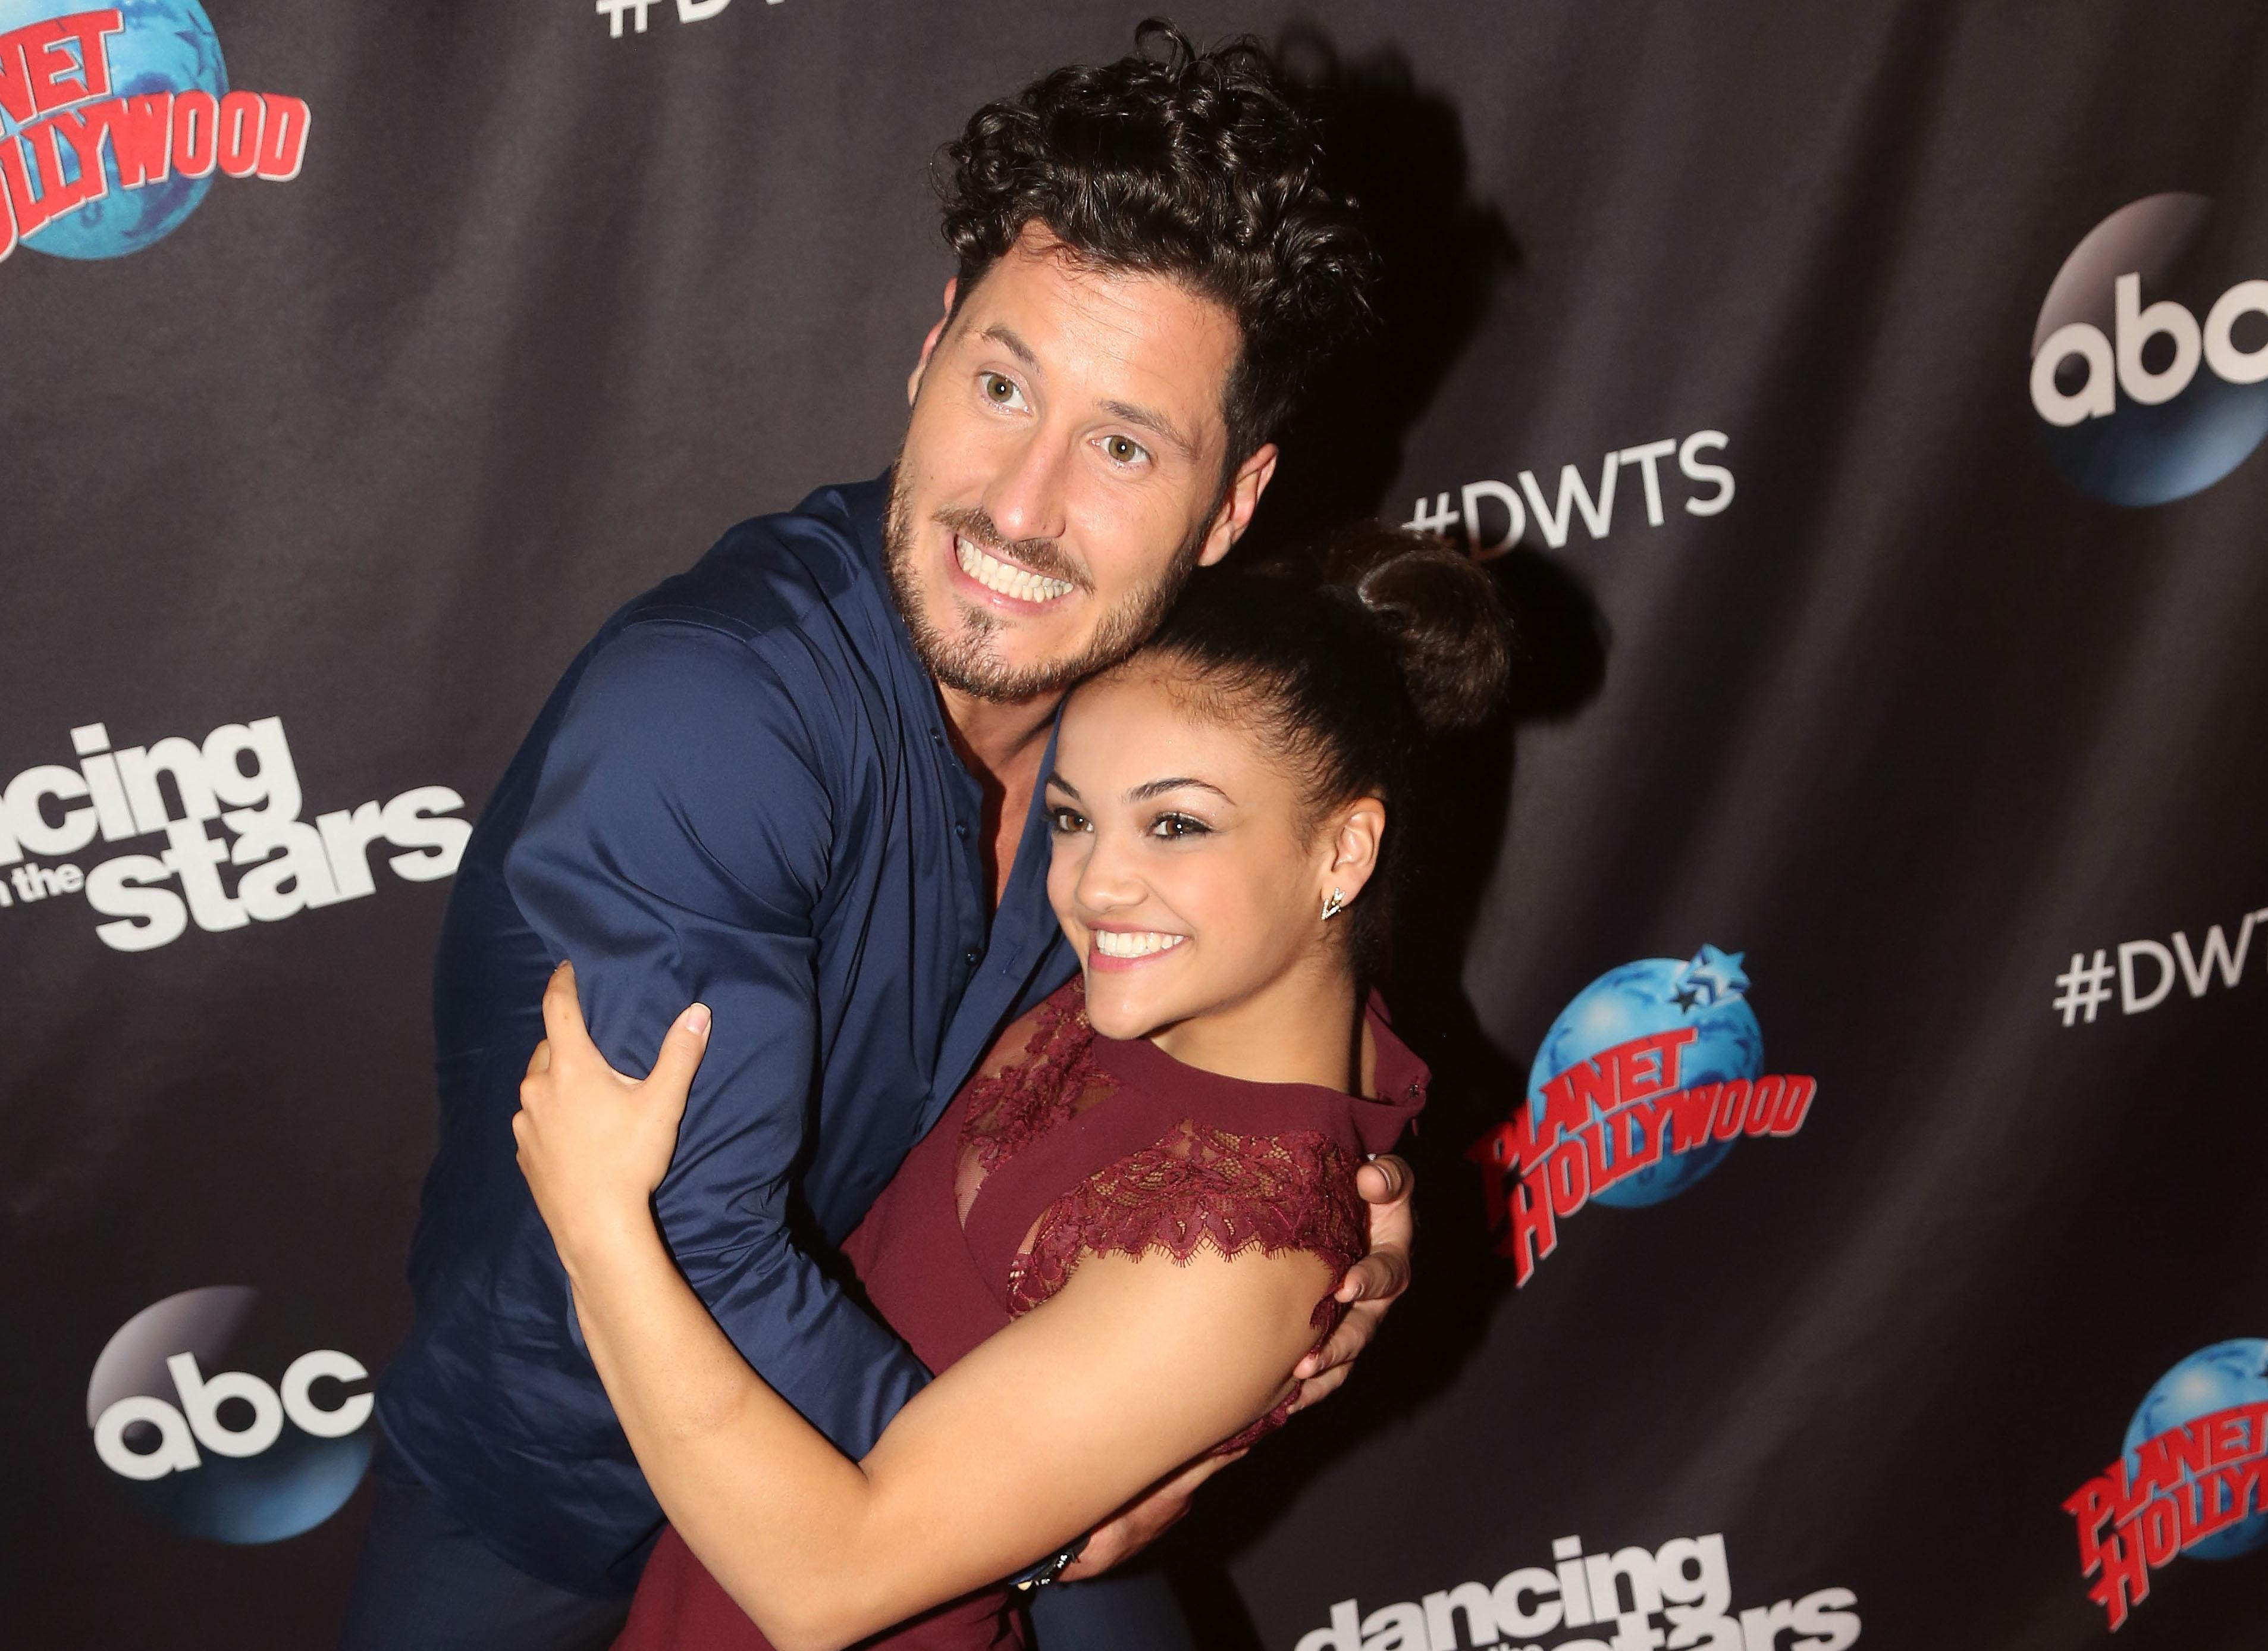 Home to have angered locals is a 30 000 square foot creation of hadid - Laurie Hernandez Debuted On Dancing With The Stars Last Night And Her Song Choice Was On Point